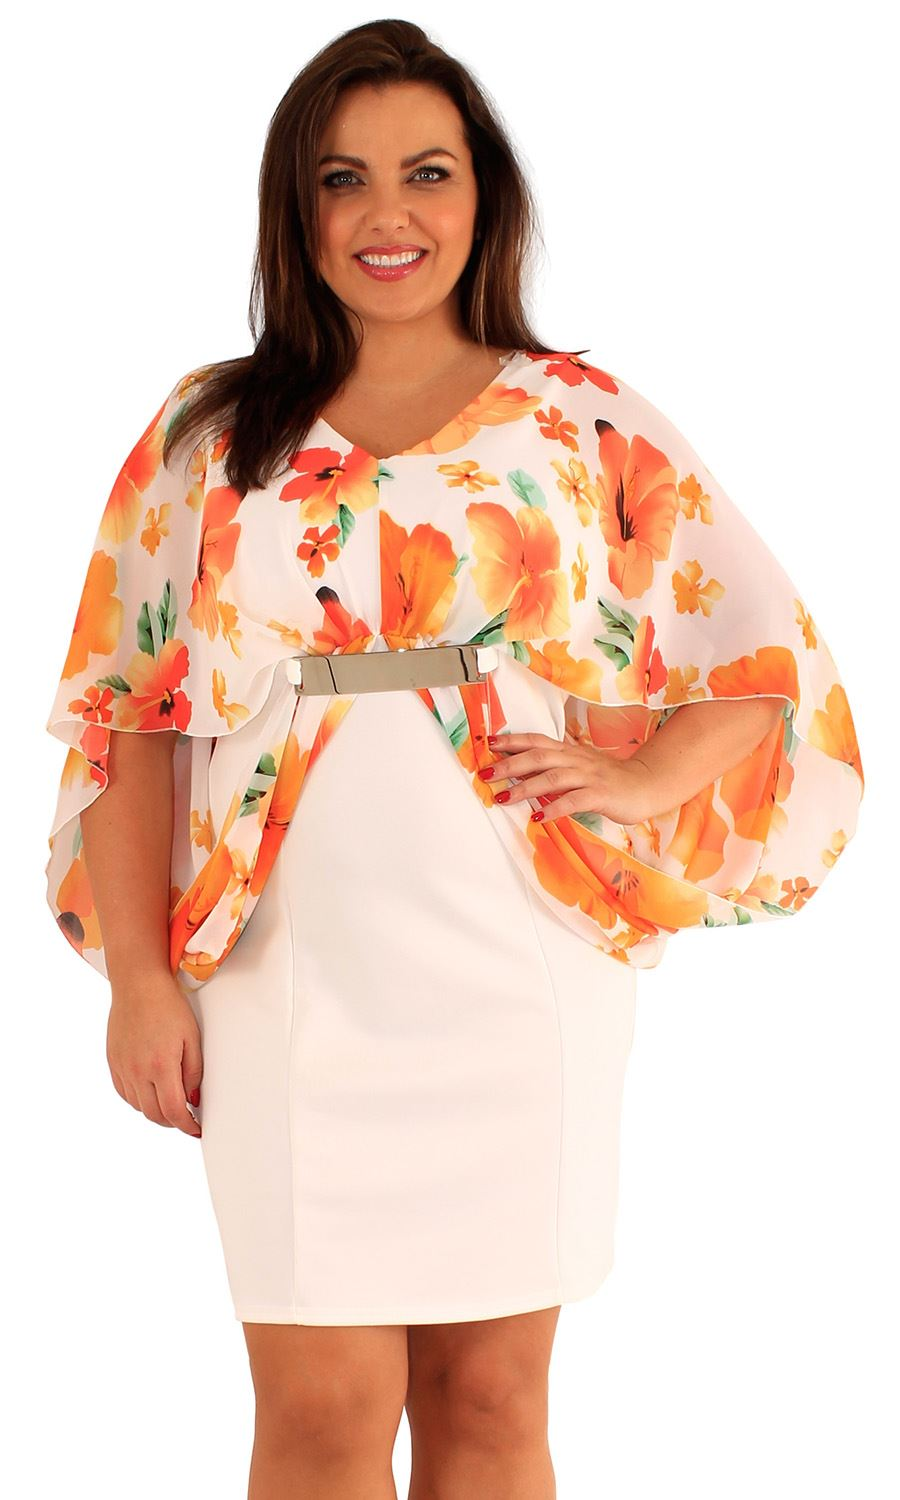 16af115e2d8 Details about New Womens Plus Size Floral Print Kimono Batwing Sleeve  Chiffon Bodycon Dress